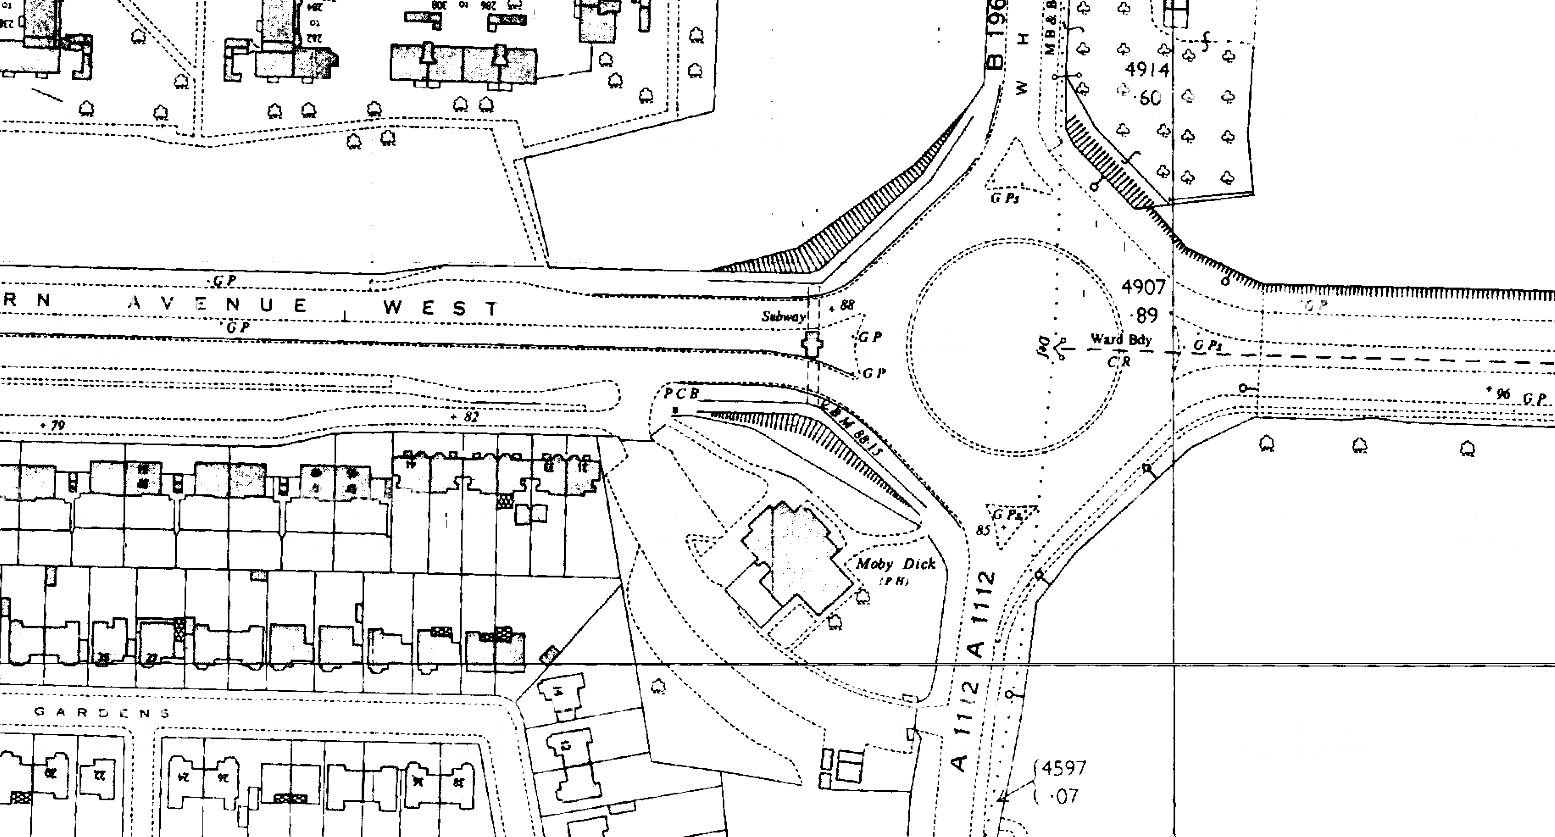 K19--Moby Dick Roundabout, Chadwell Heath Box--1963-1964 OS Map Extract 1-2500.png